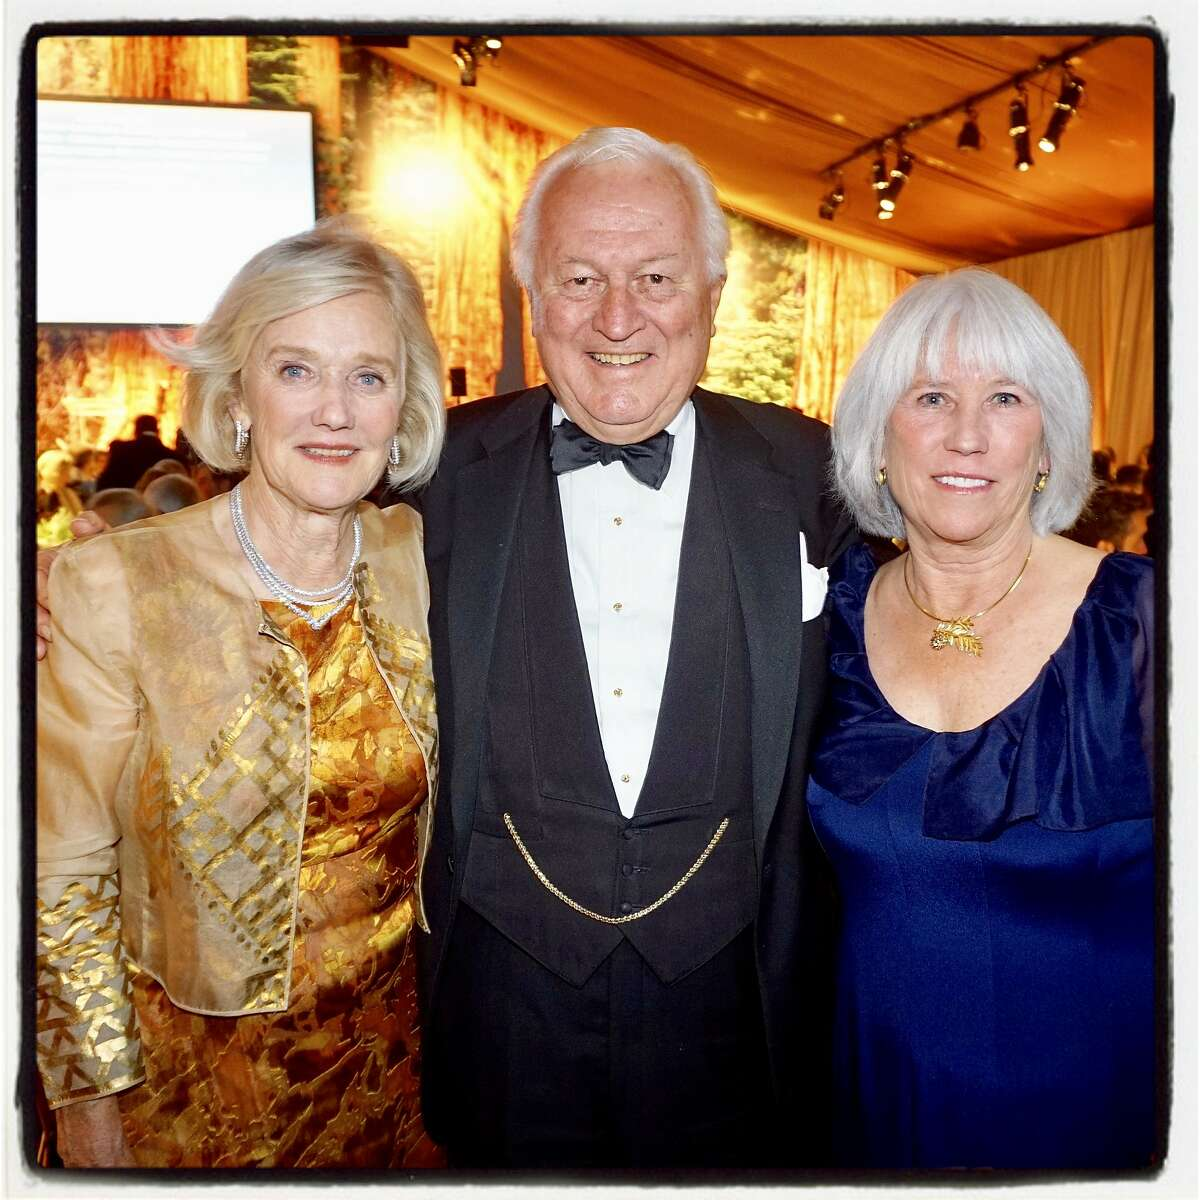 Redwoods League gala honorary chair Judy Otter (left) with her husband, Dick Otter and event chair Sandra Donnell. Oct. 13, 2018.